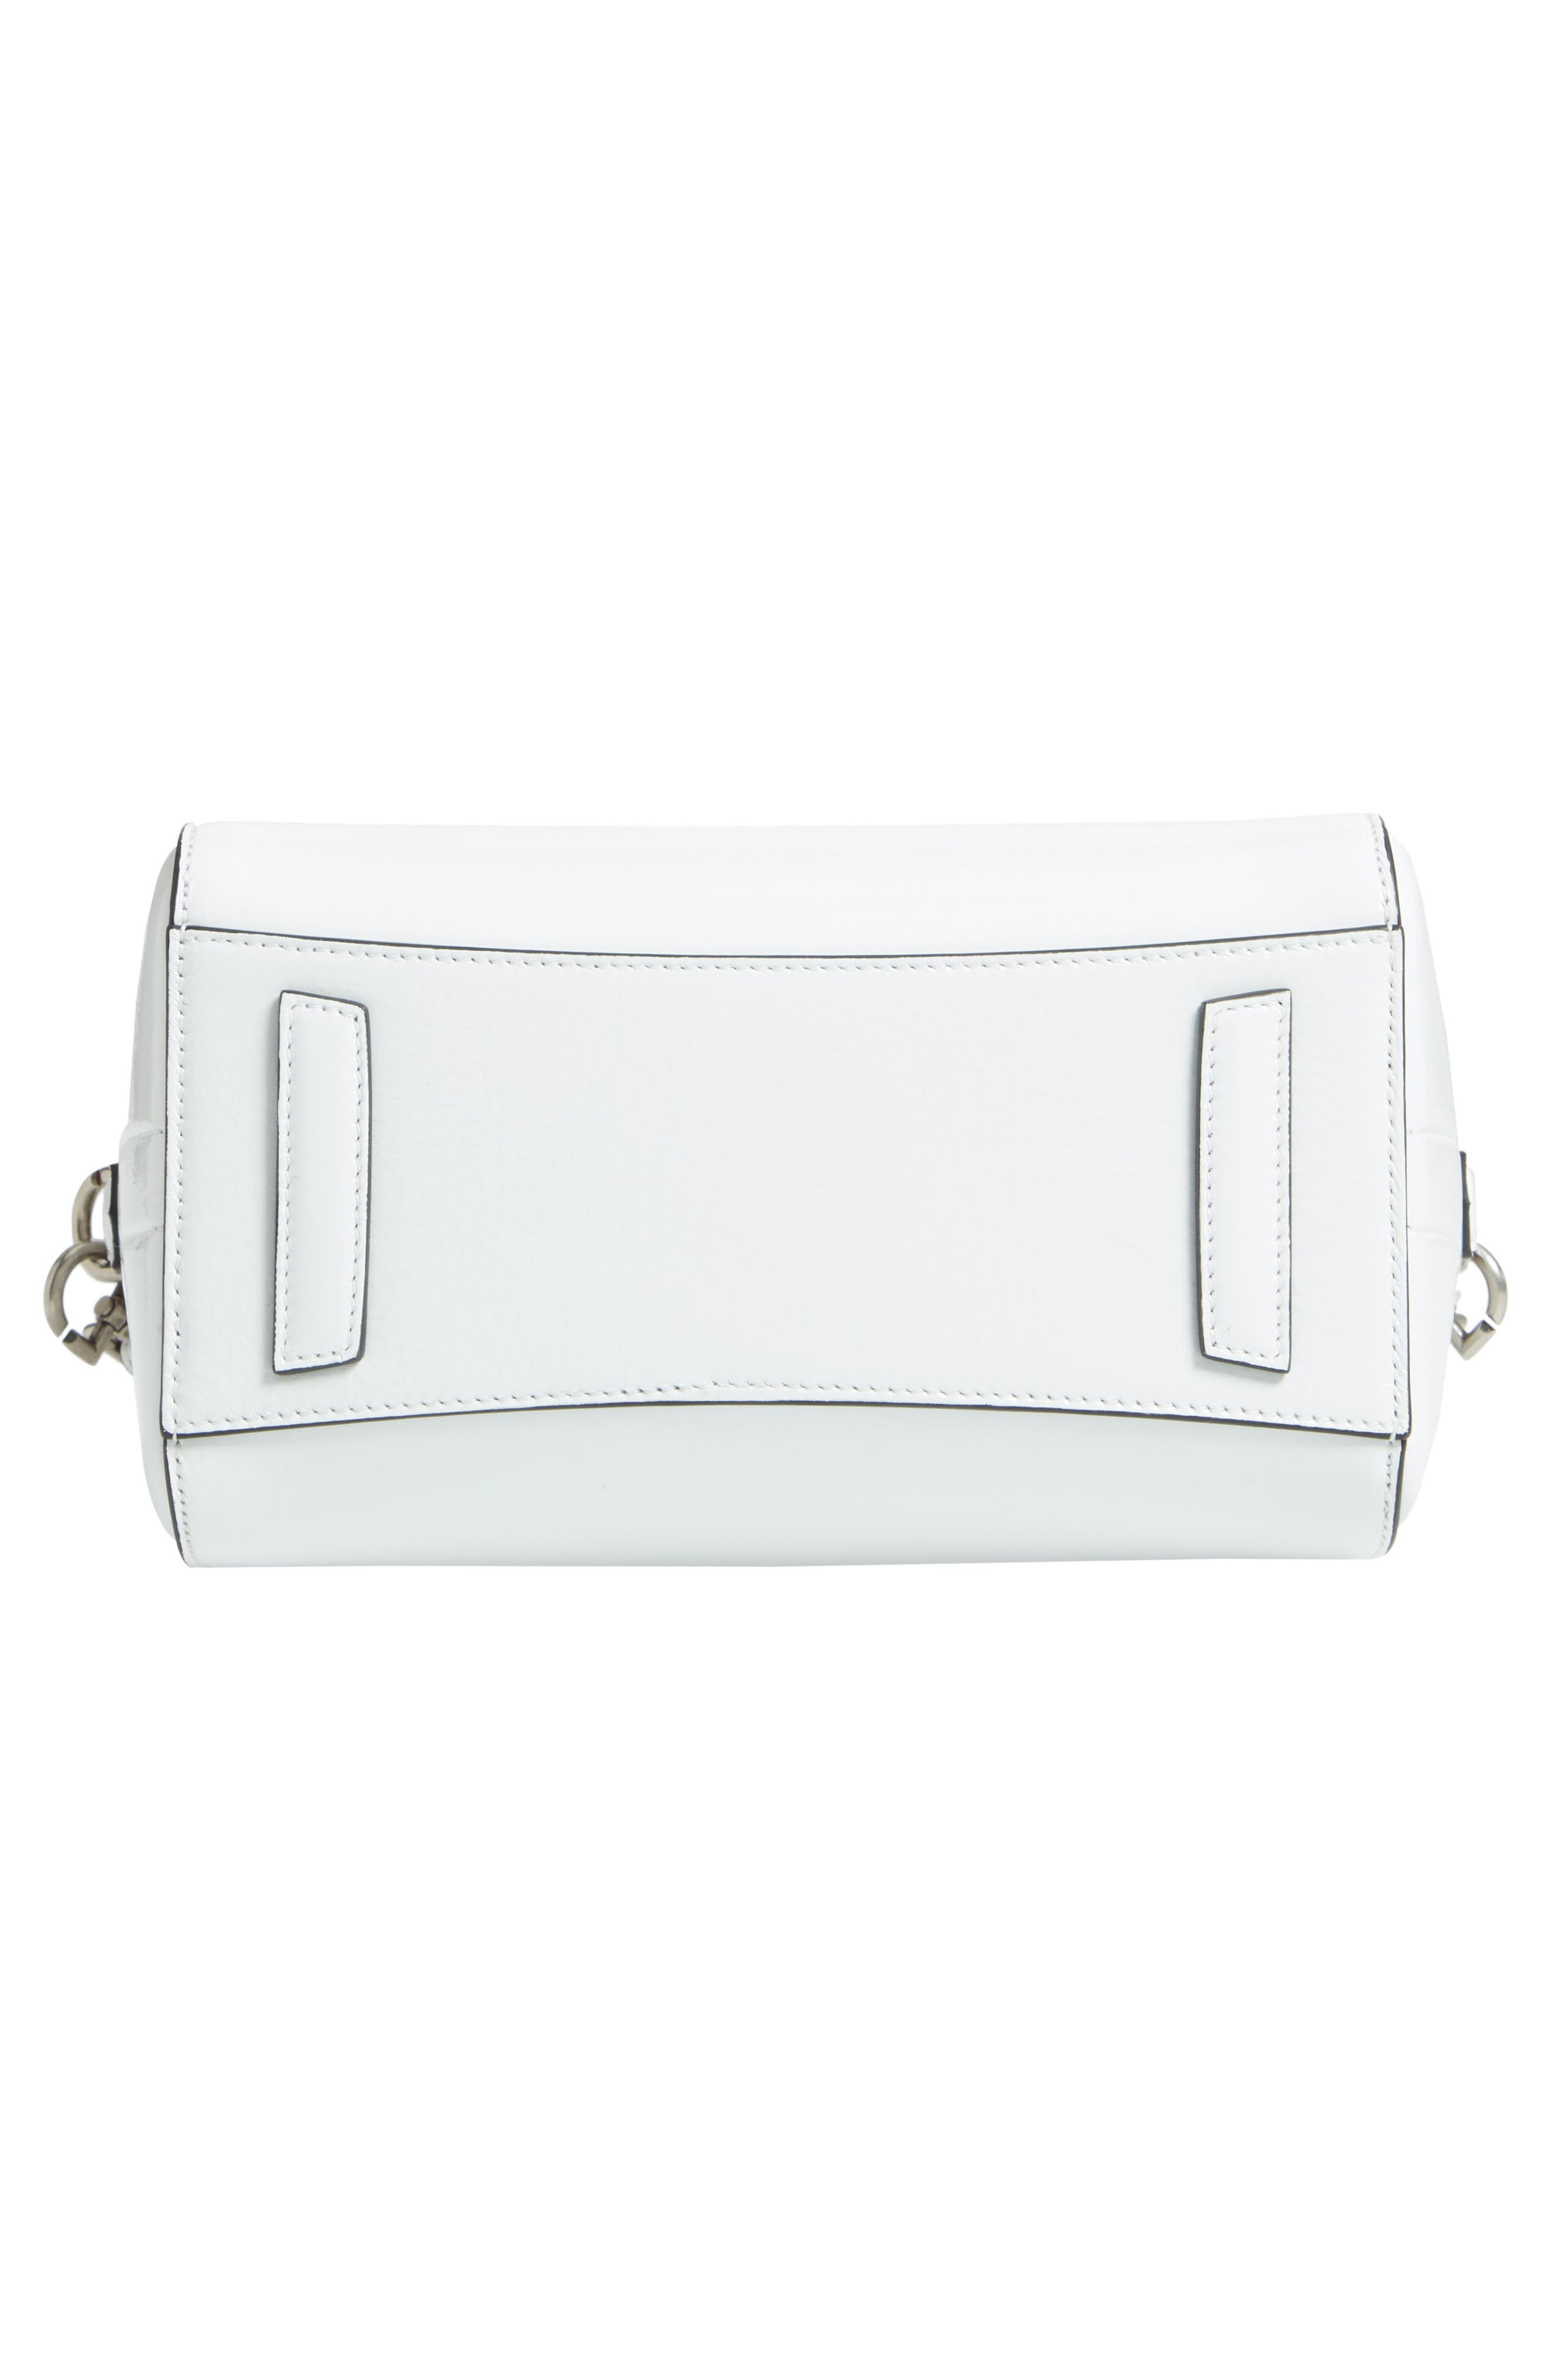 Mini Antigona Patent Leather Satchel,                             Alternate thumbnail 6, color,                             WHITE